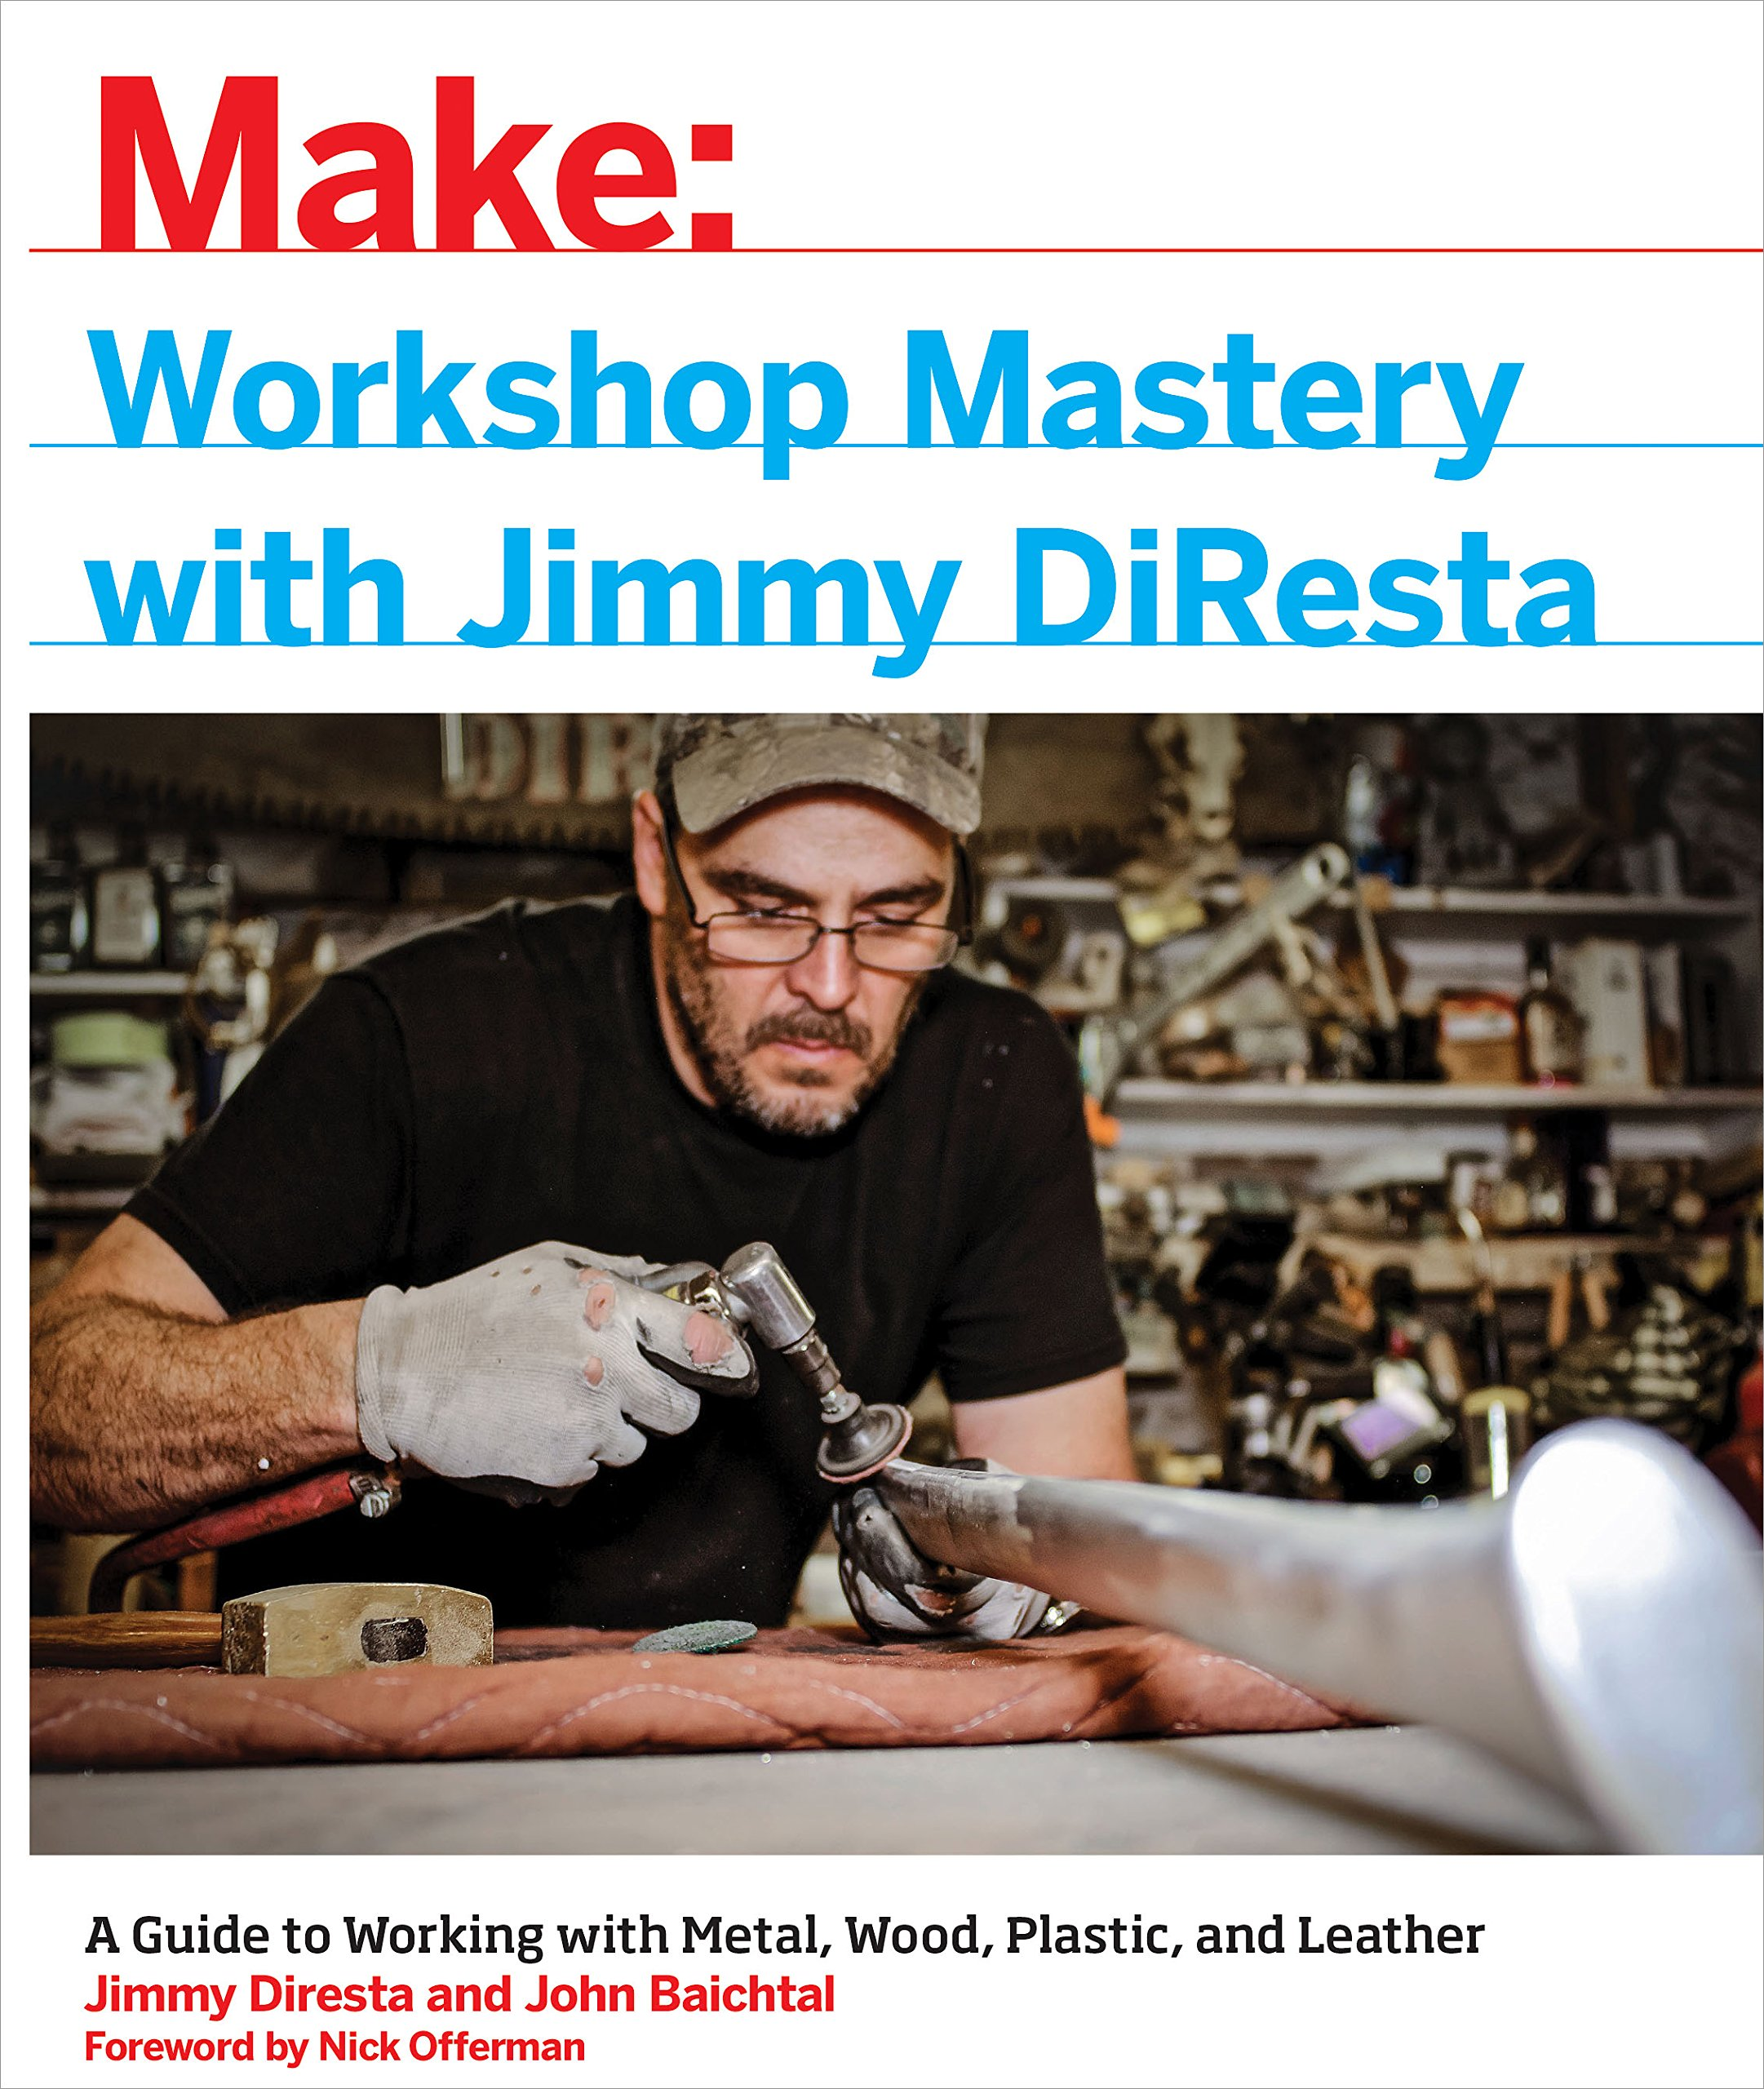 MAKE: Workshop Mastery With Jimmy DiResta: A Guide to Working with Metal, Wood, Plastic, and Leather